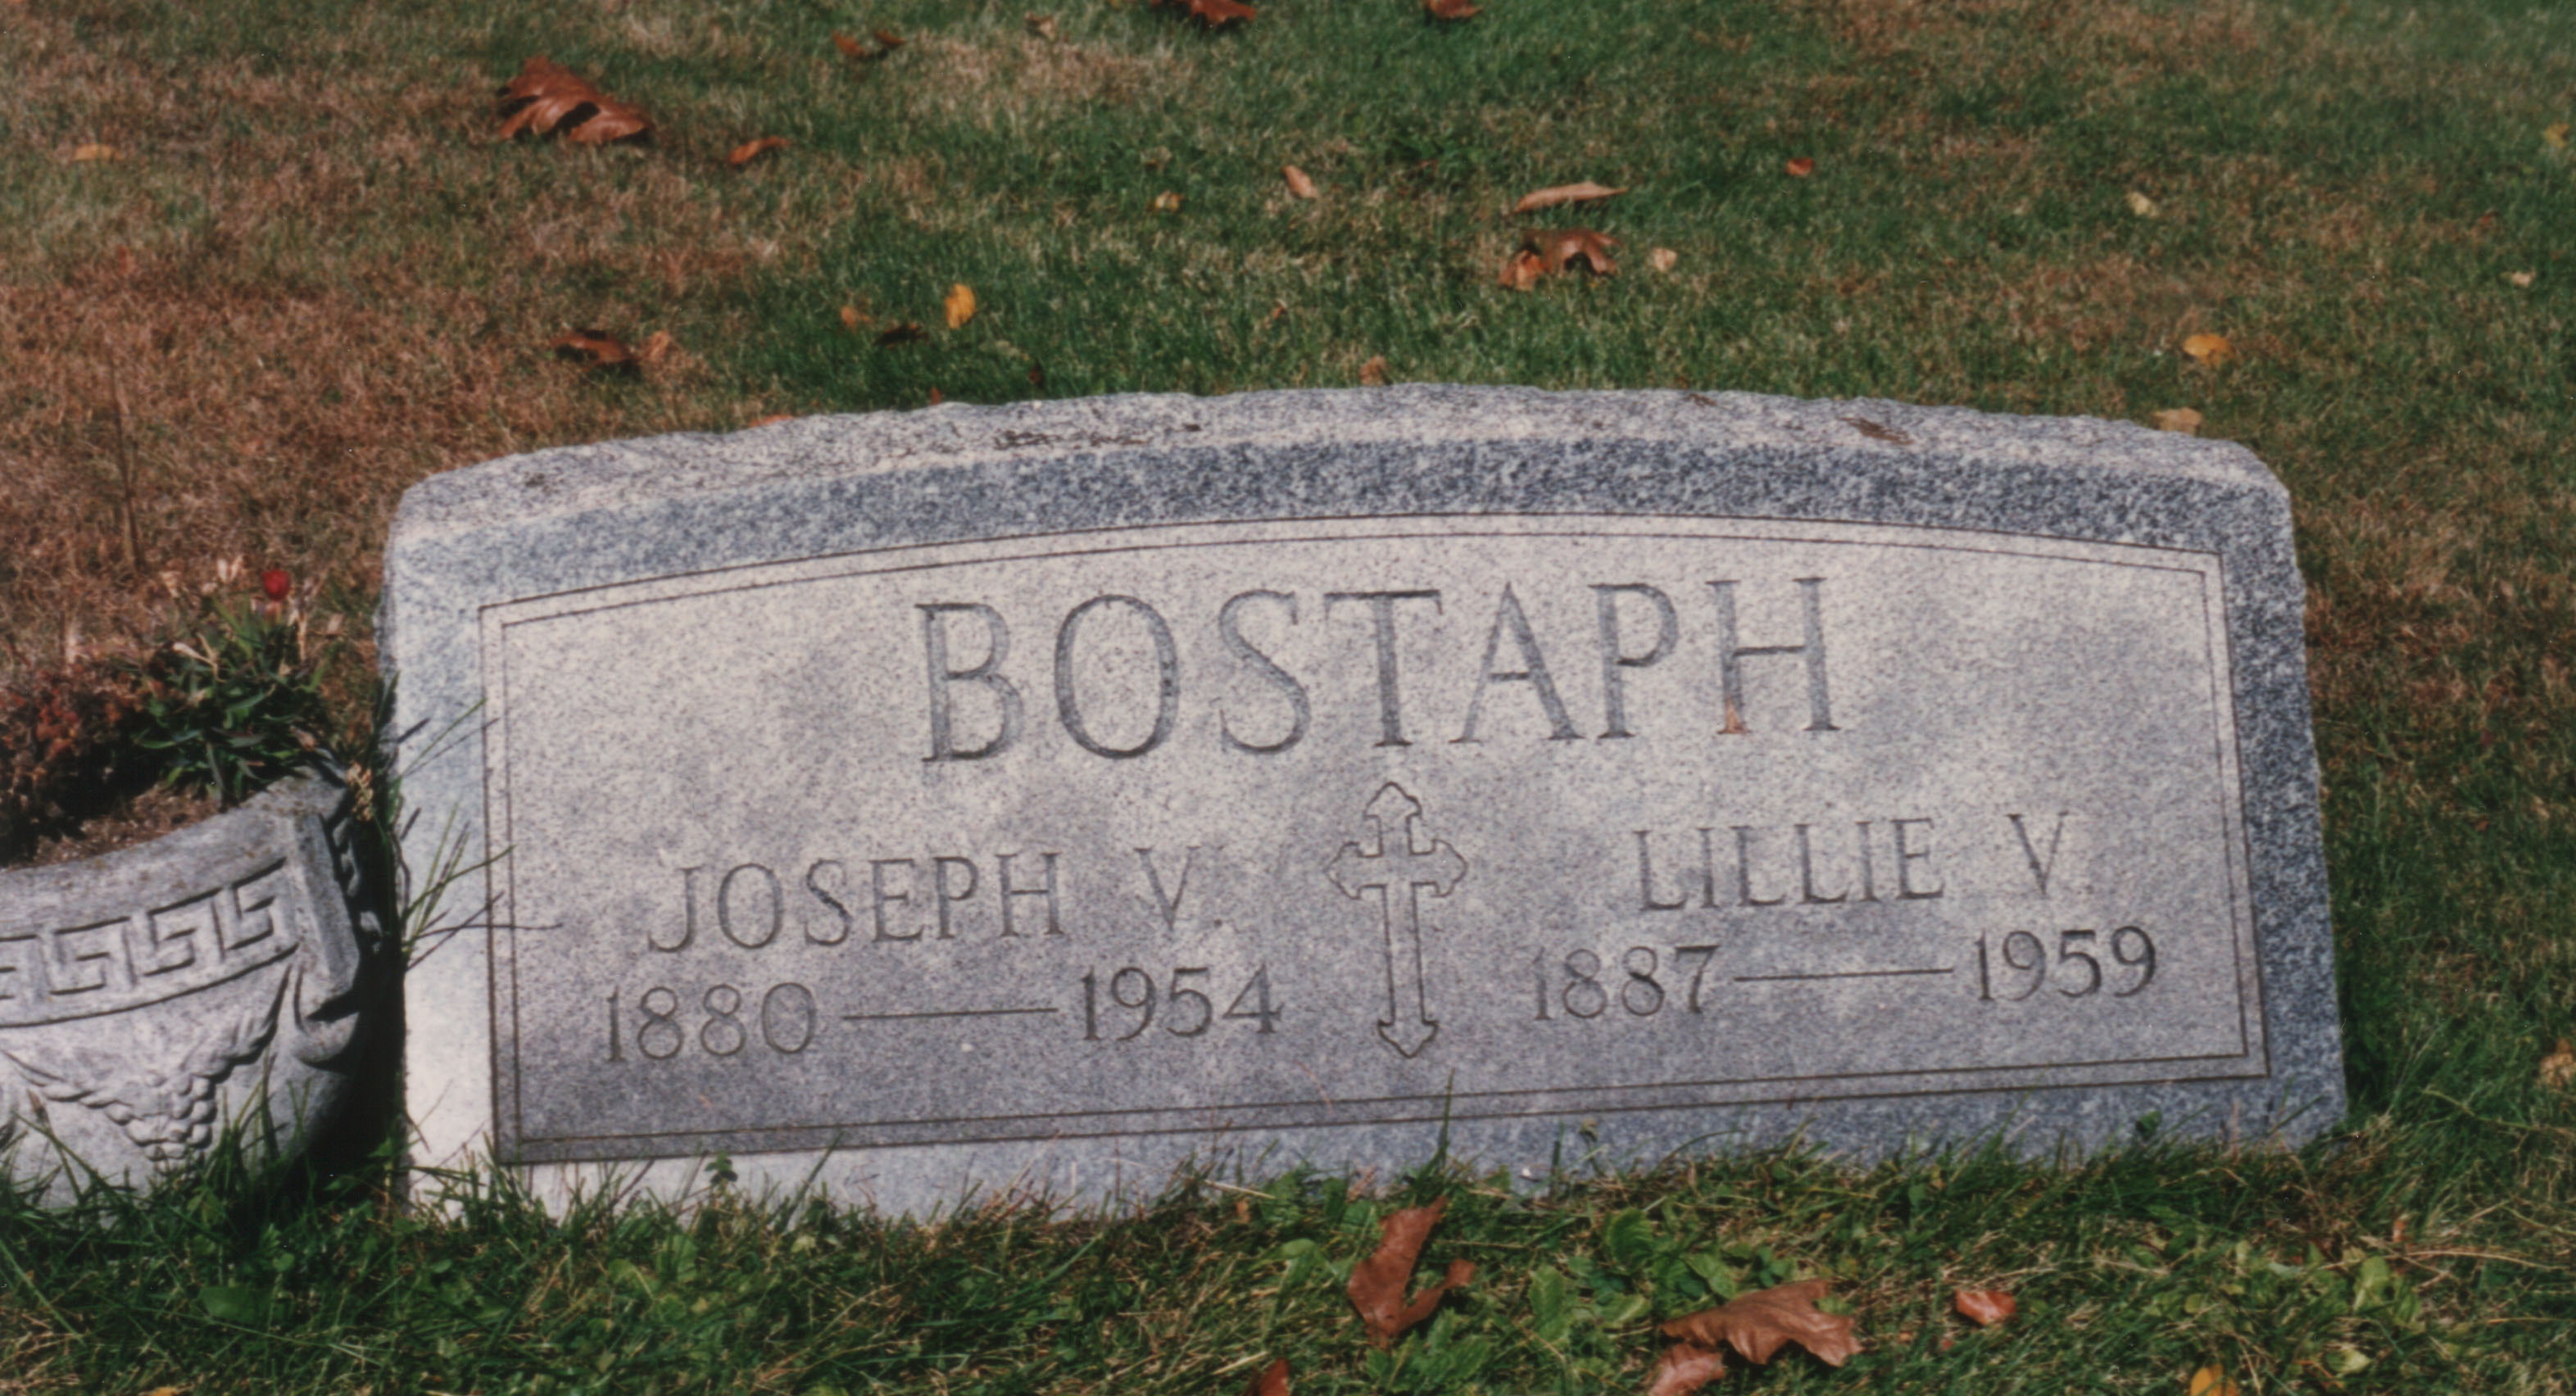 William Bostaph